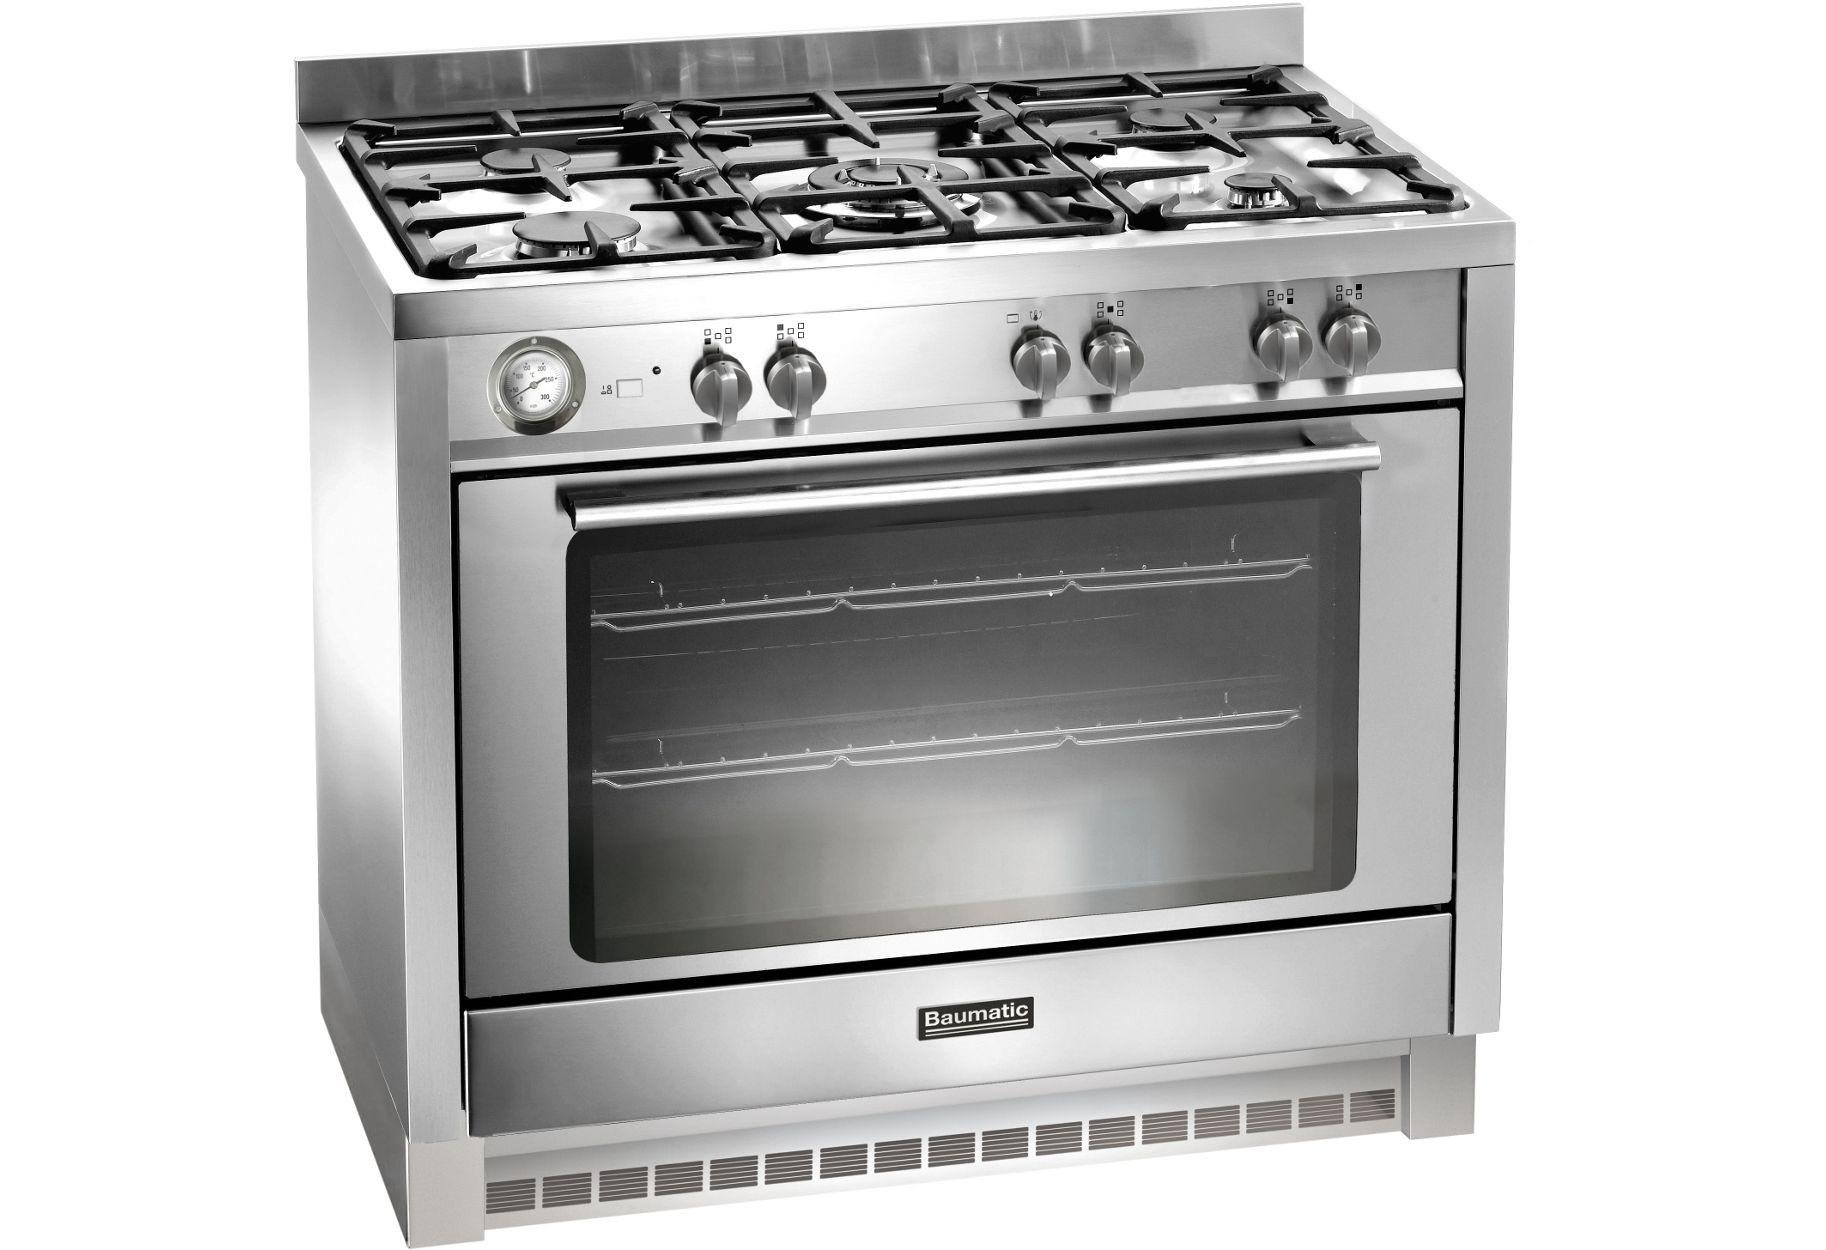 Image of Baumatic BCG905SS 90cm Gas Range Cooker - Stainless Steel.